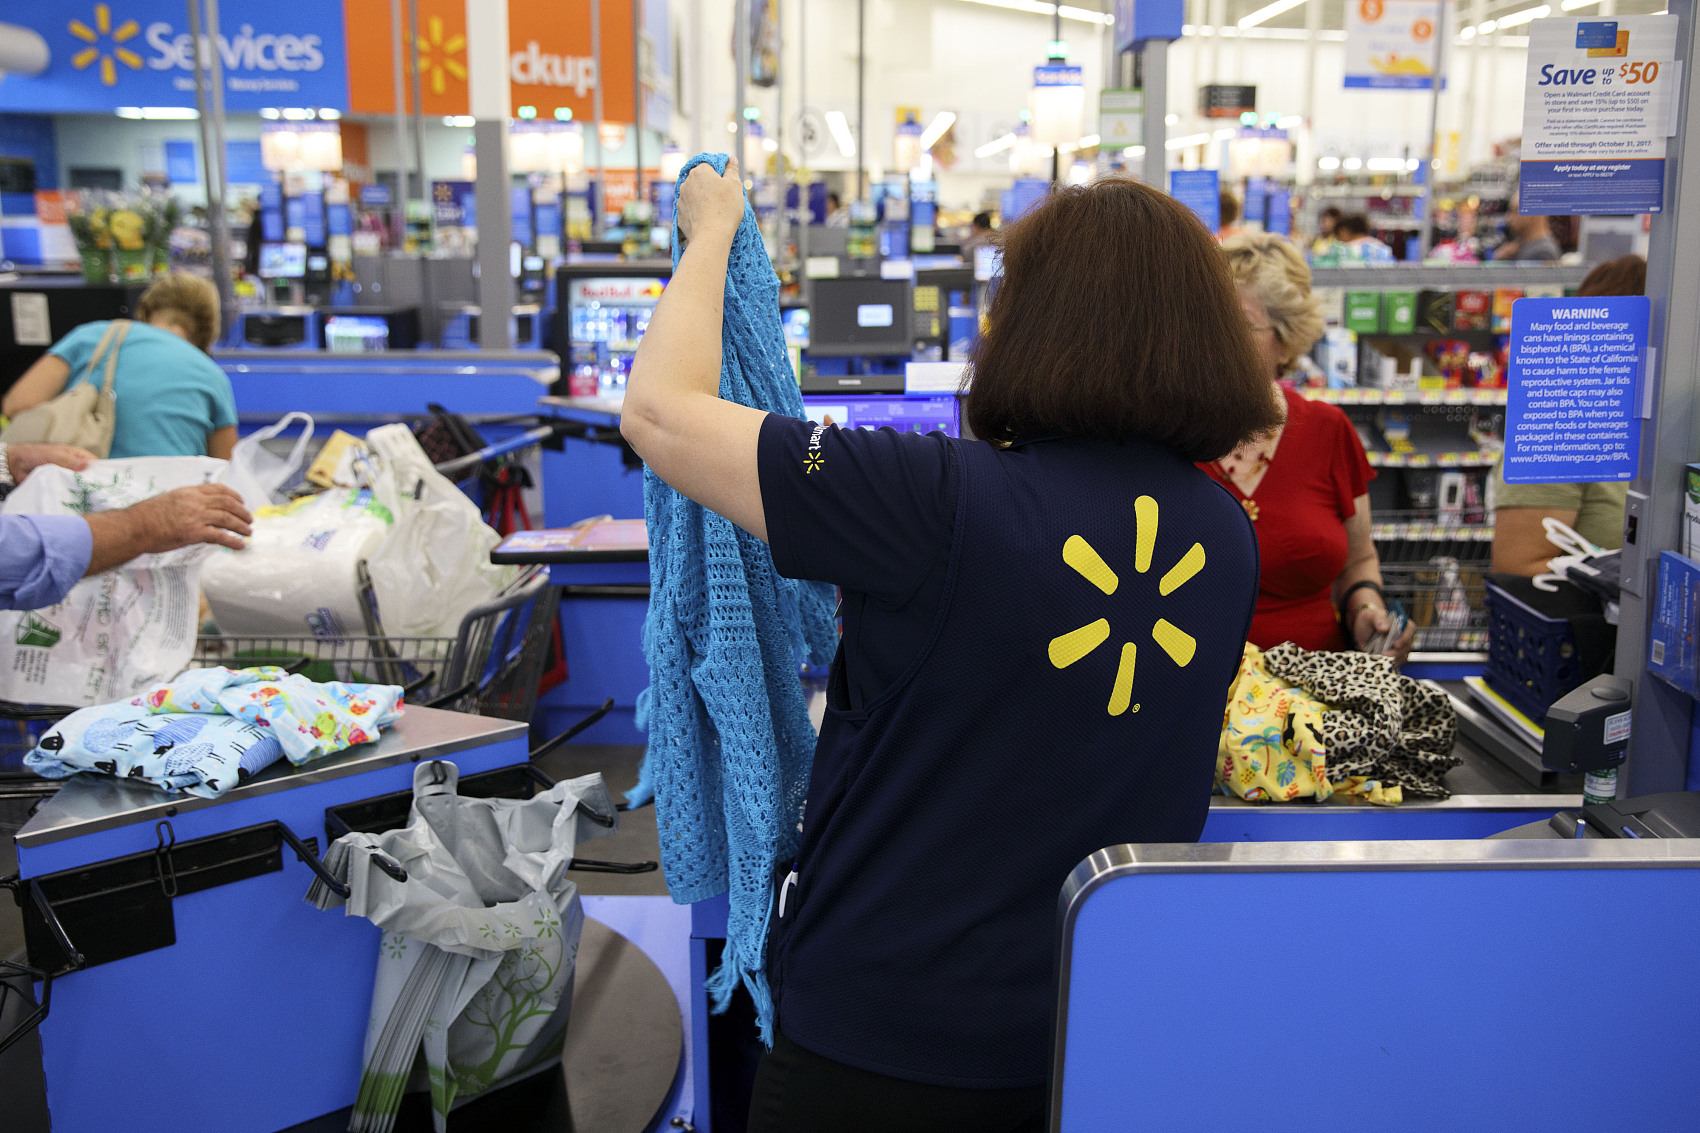 Wal-Mart gears up to compete on Black Friday